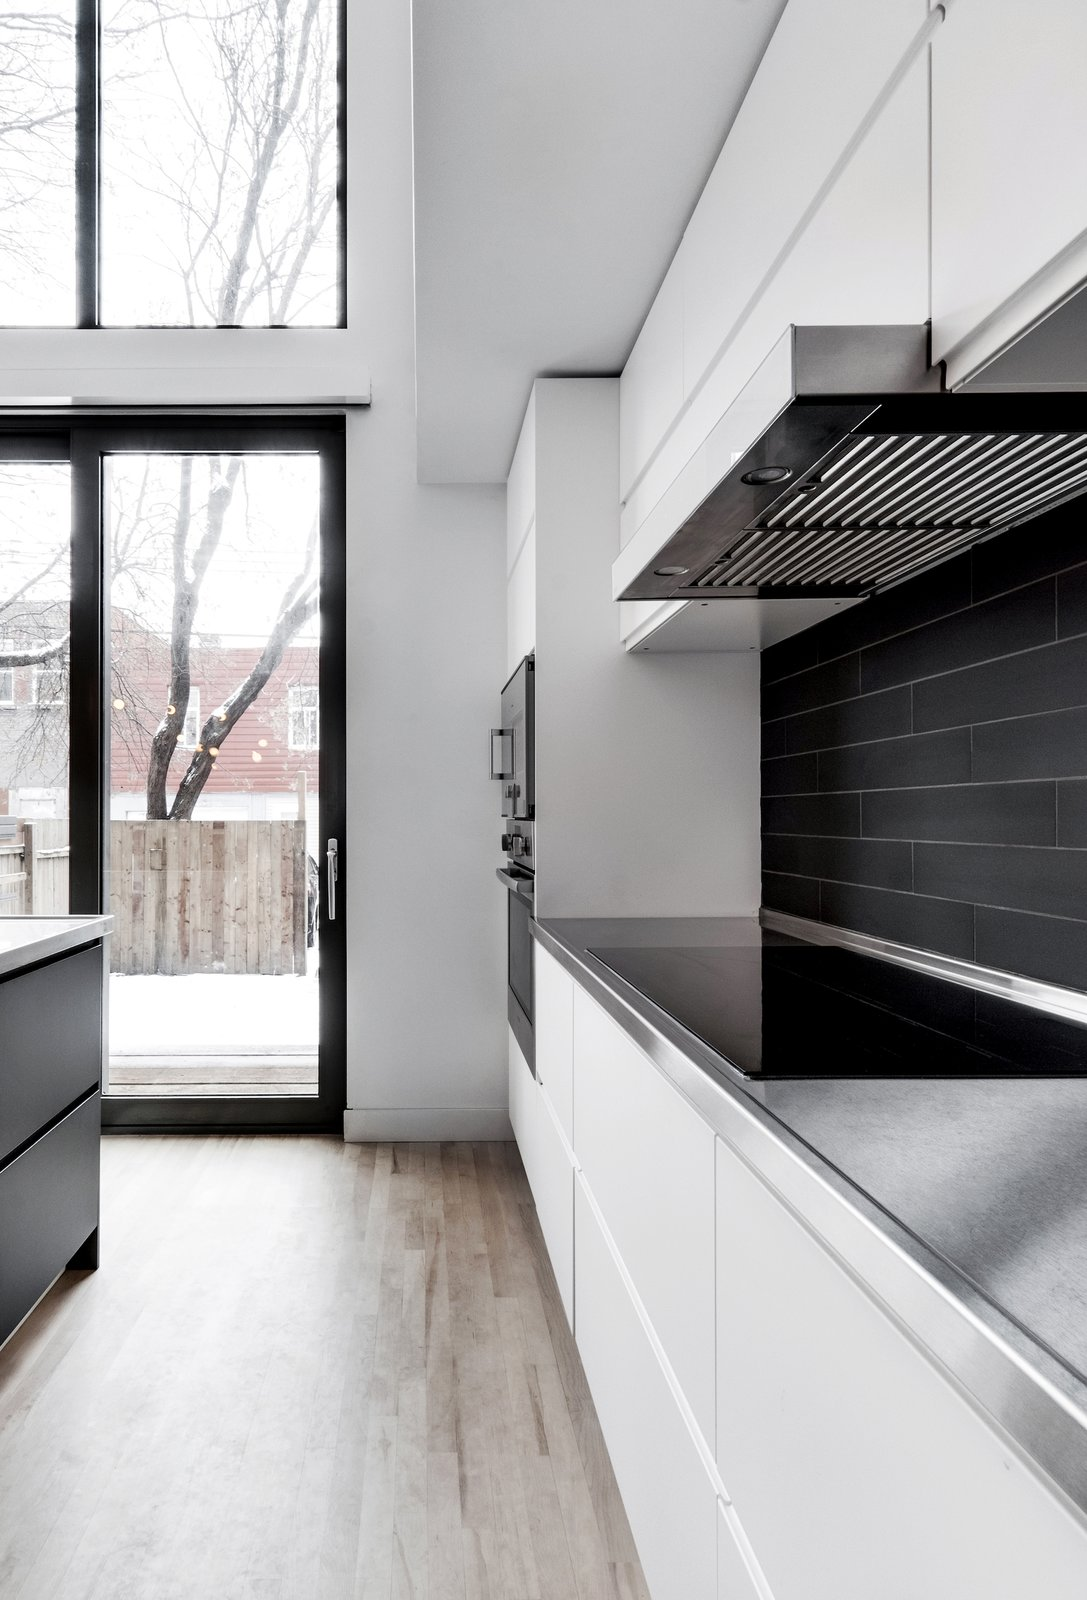 Photo 5 of 10 in Residence SAINT-ANDRÉ by APPAREIL architecture